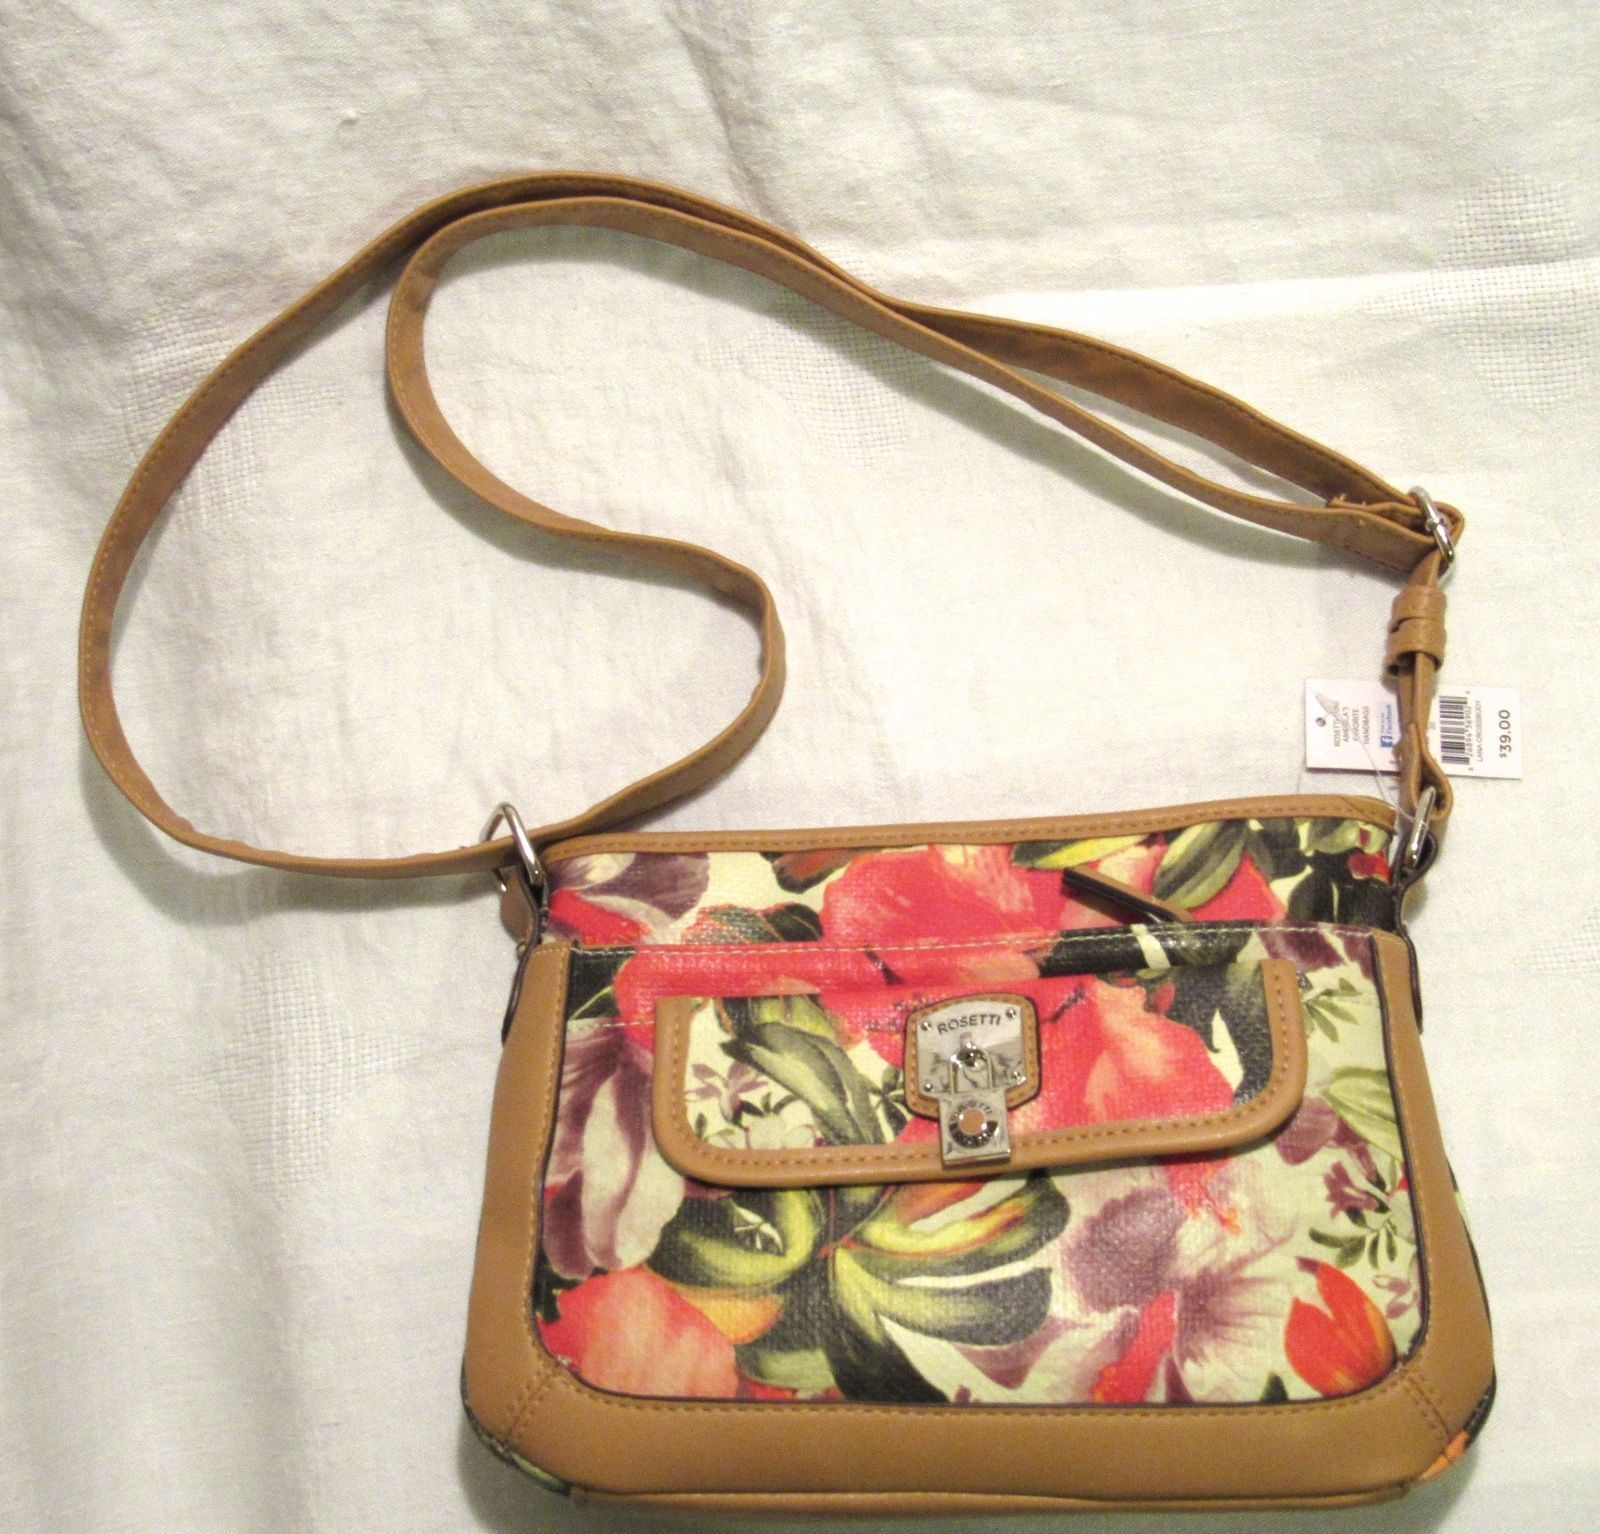 Rosetti Lana Havana Floral Cross Body Faux Leather